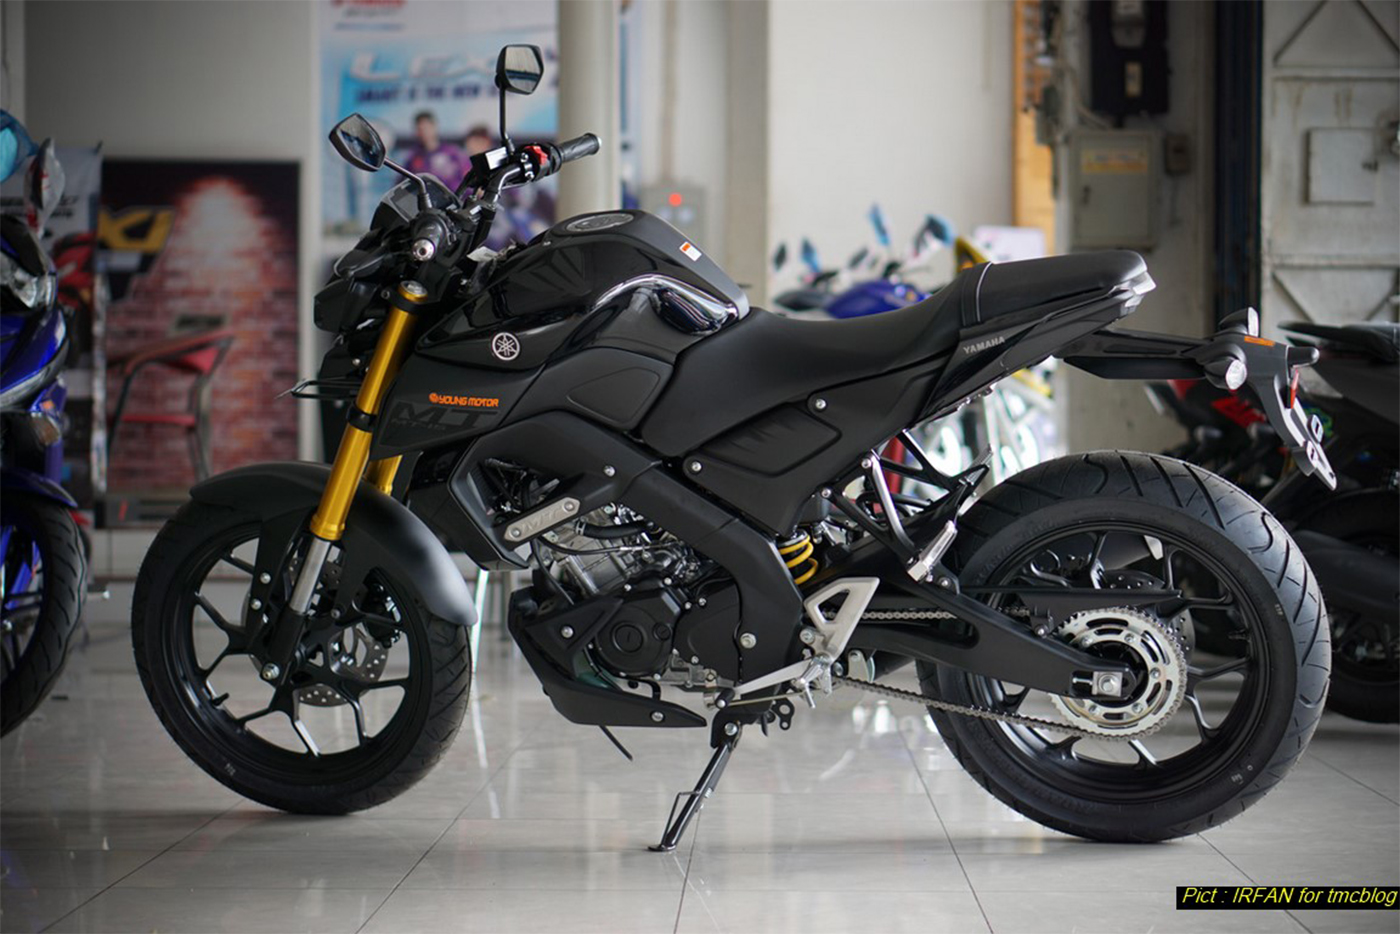 yamaha-mt15-indonesia-009.jpg